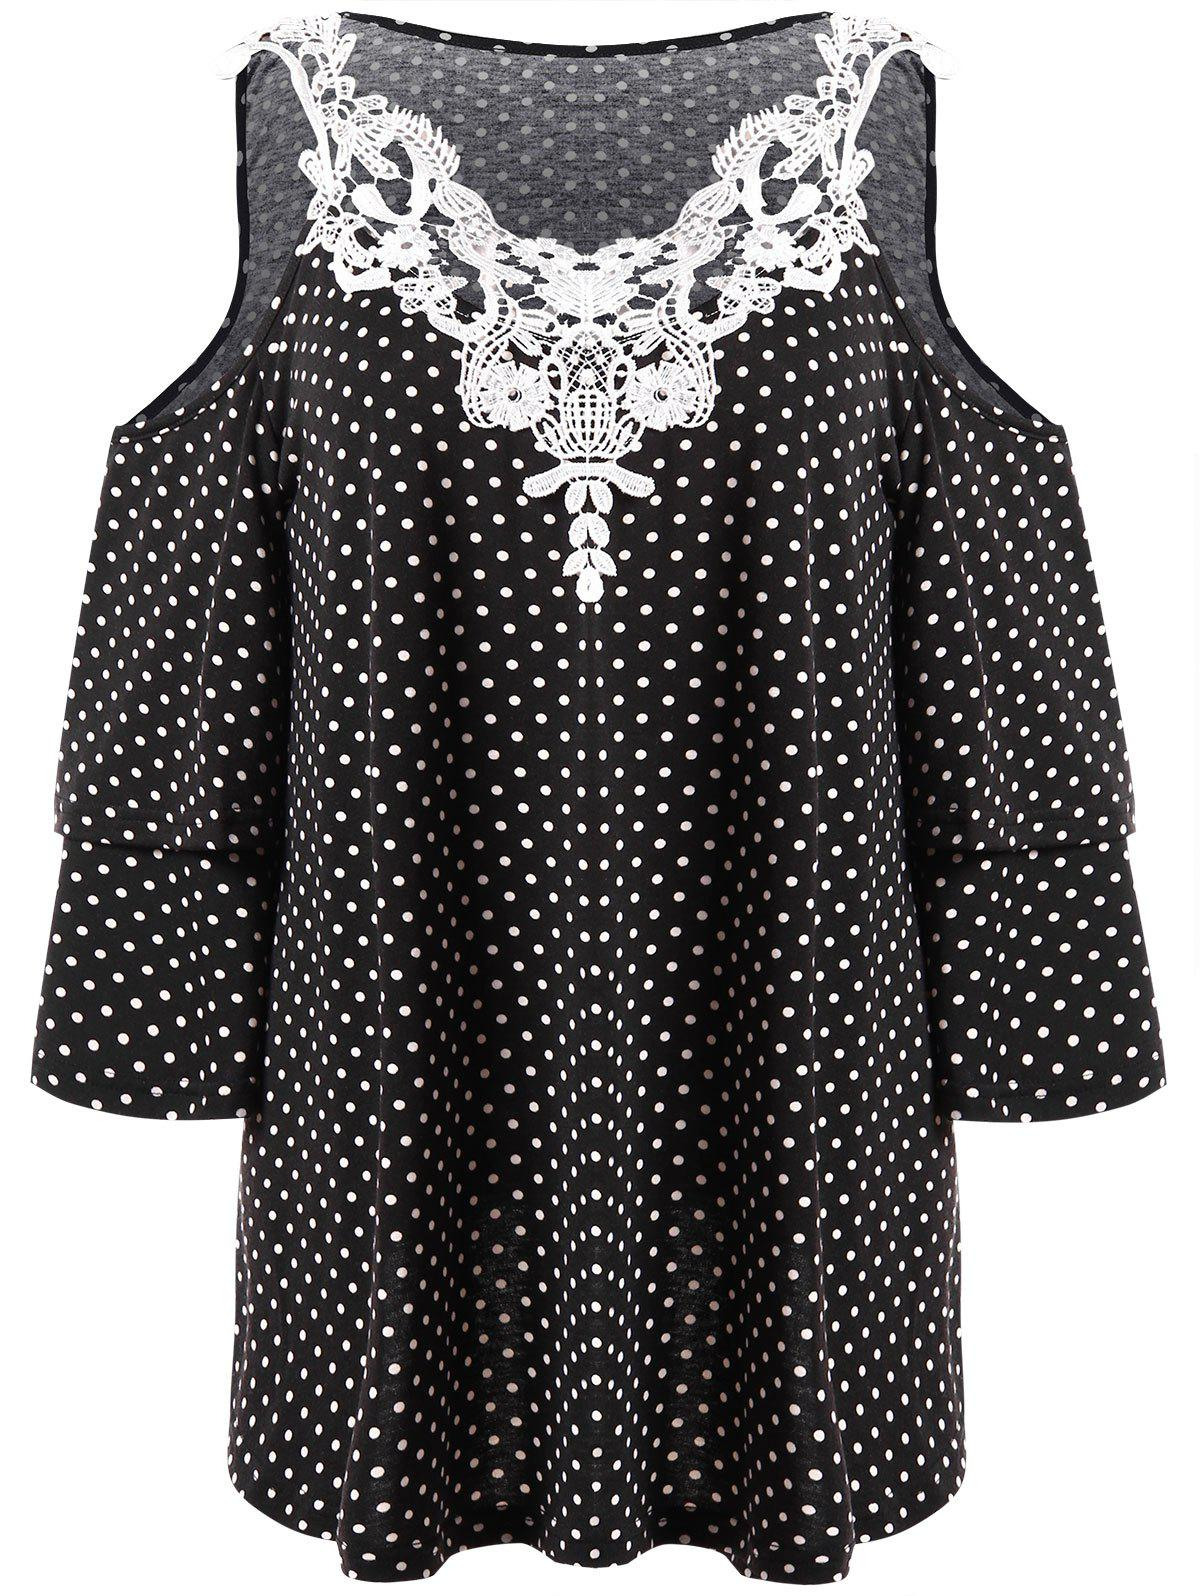 Plus Size Polka Dot Open Shoulder Top